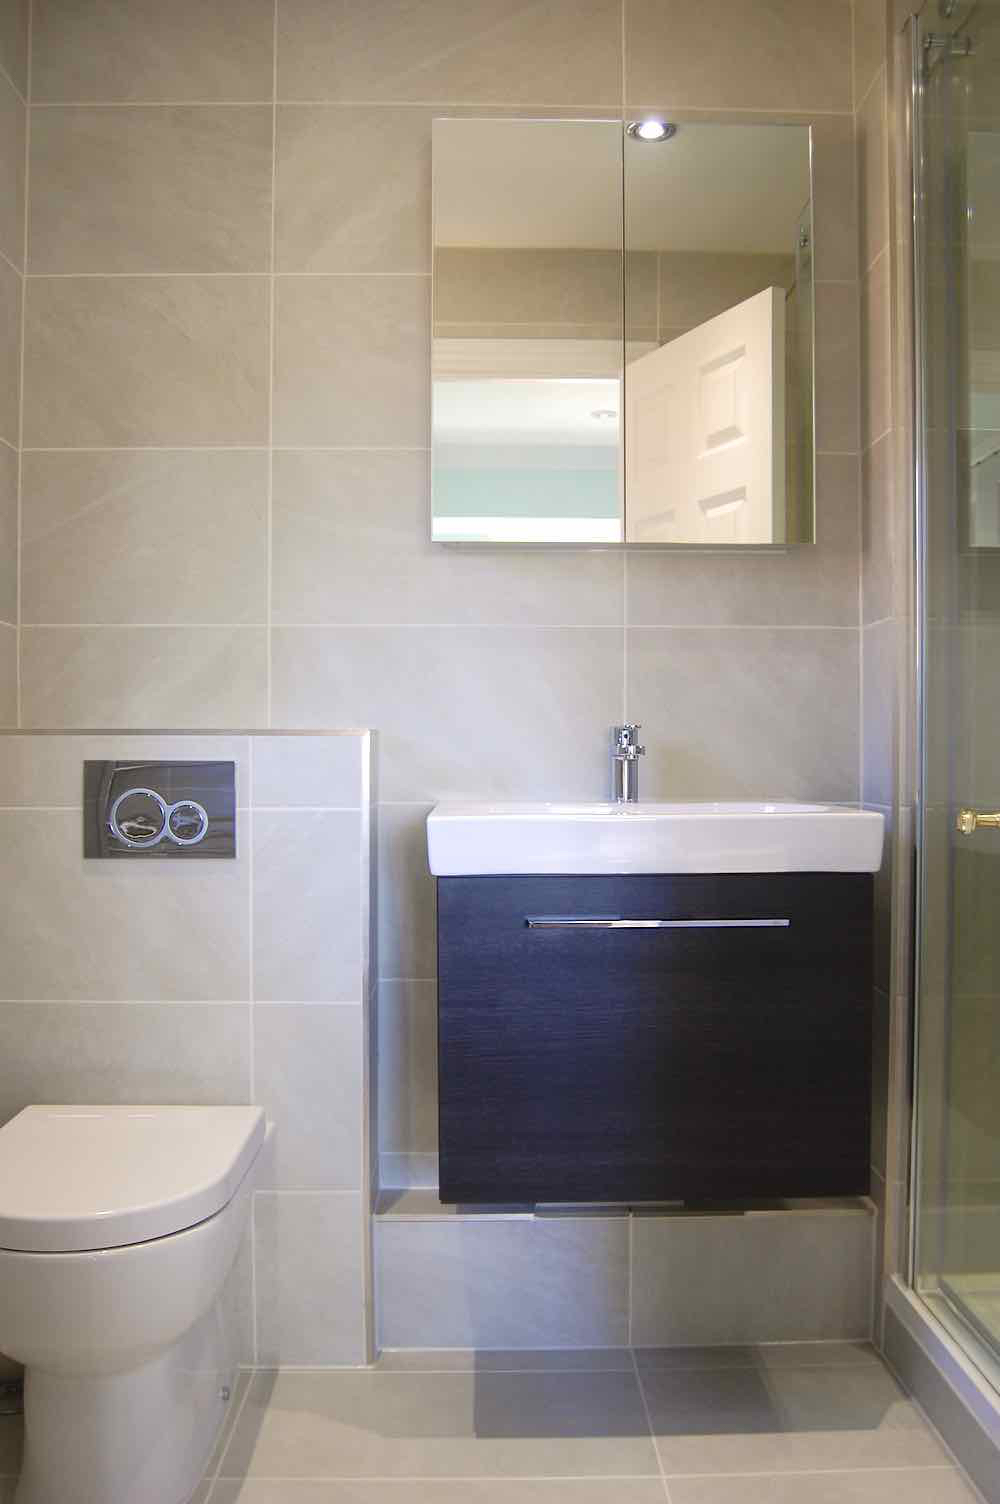 £9,850 - Shower-En-suite - minimal build/prep - Saneux, Crosswater, Flova brands. Porcelain tiles and recess in shower